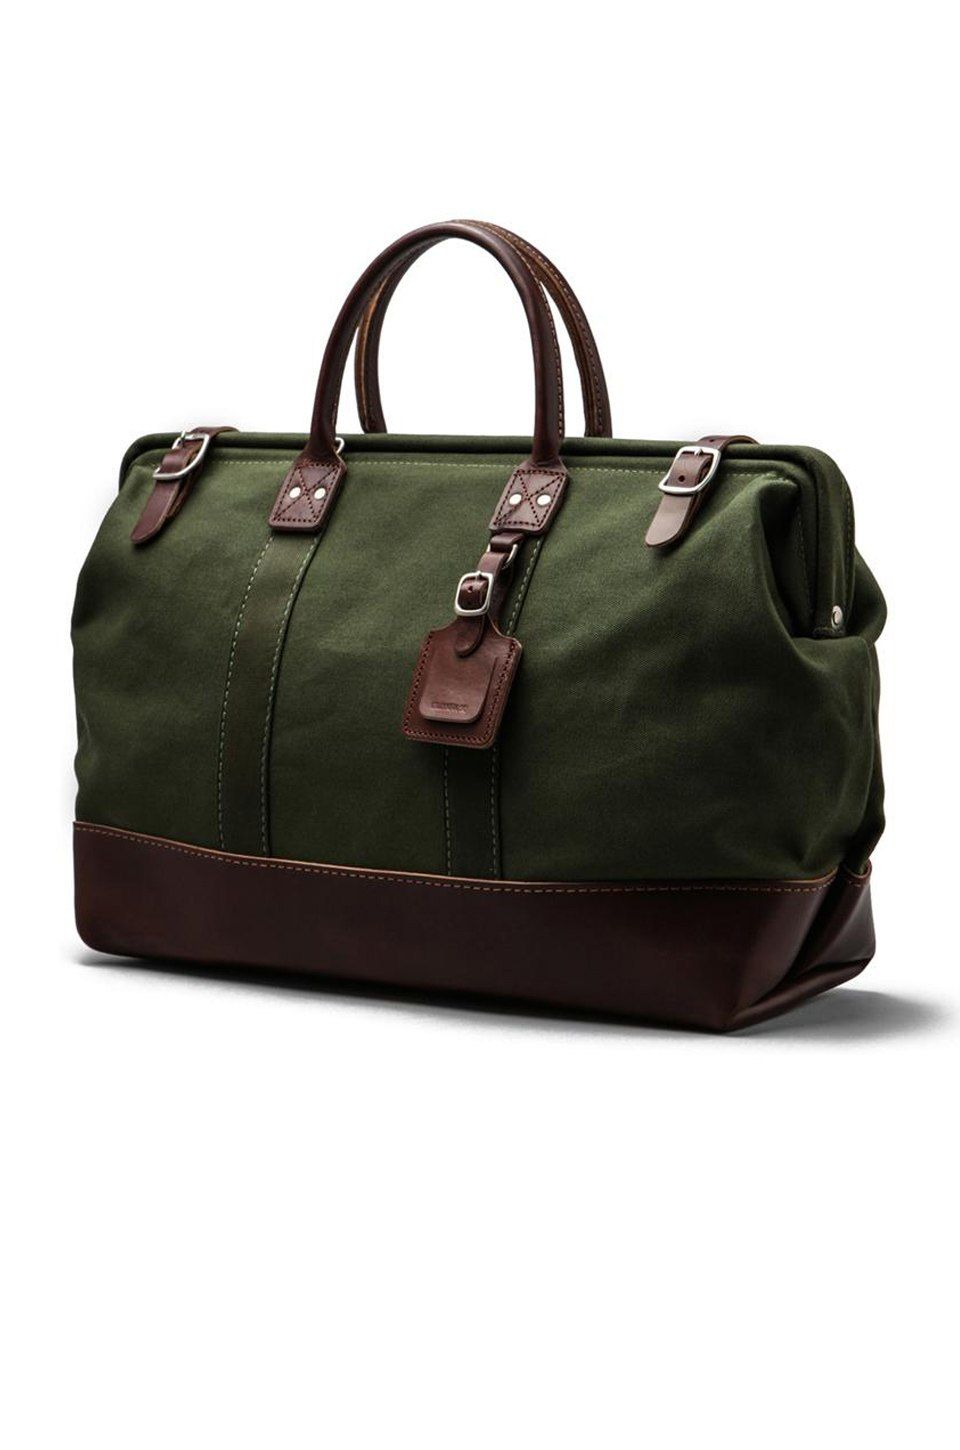 Photo of No. 166 Large Carryall